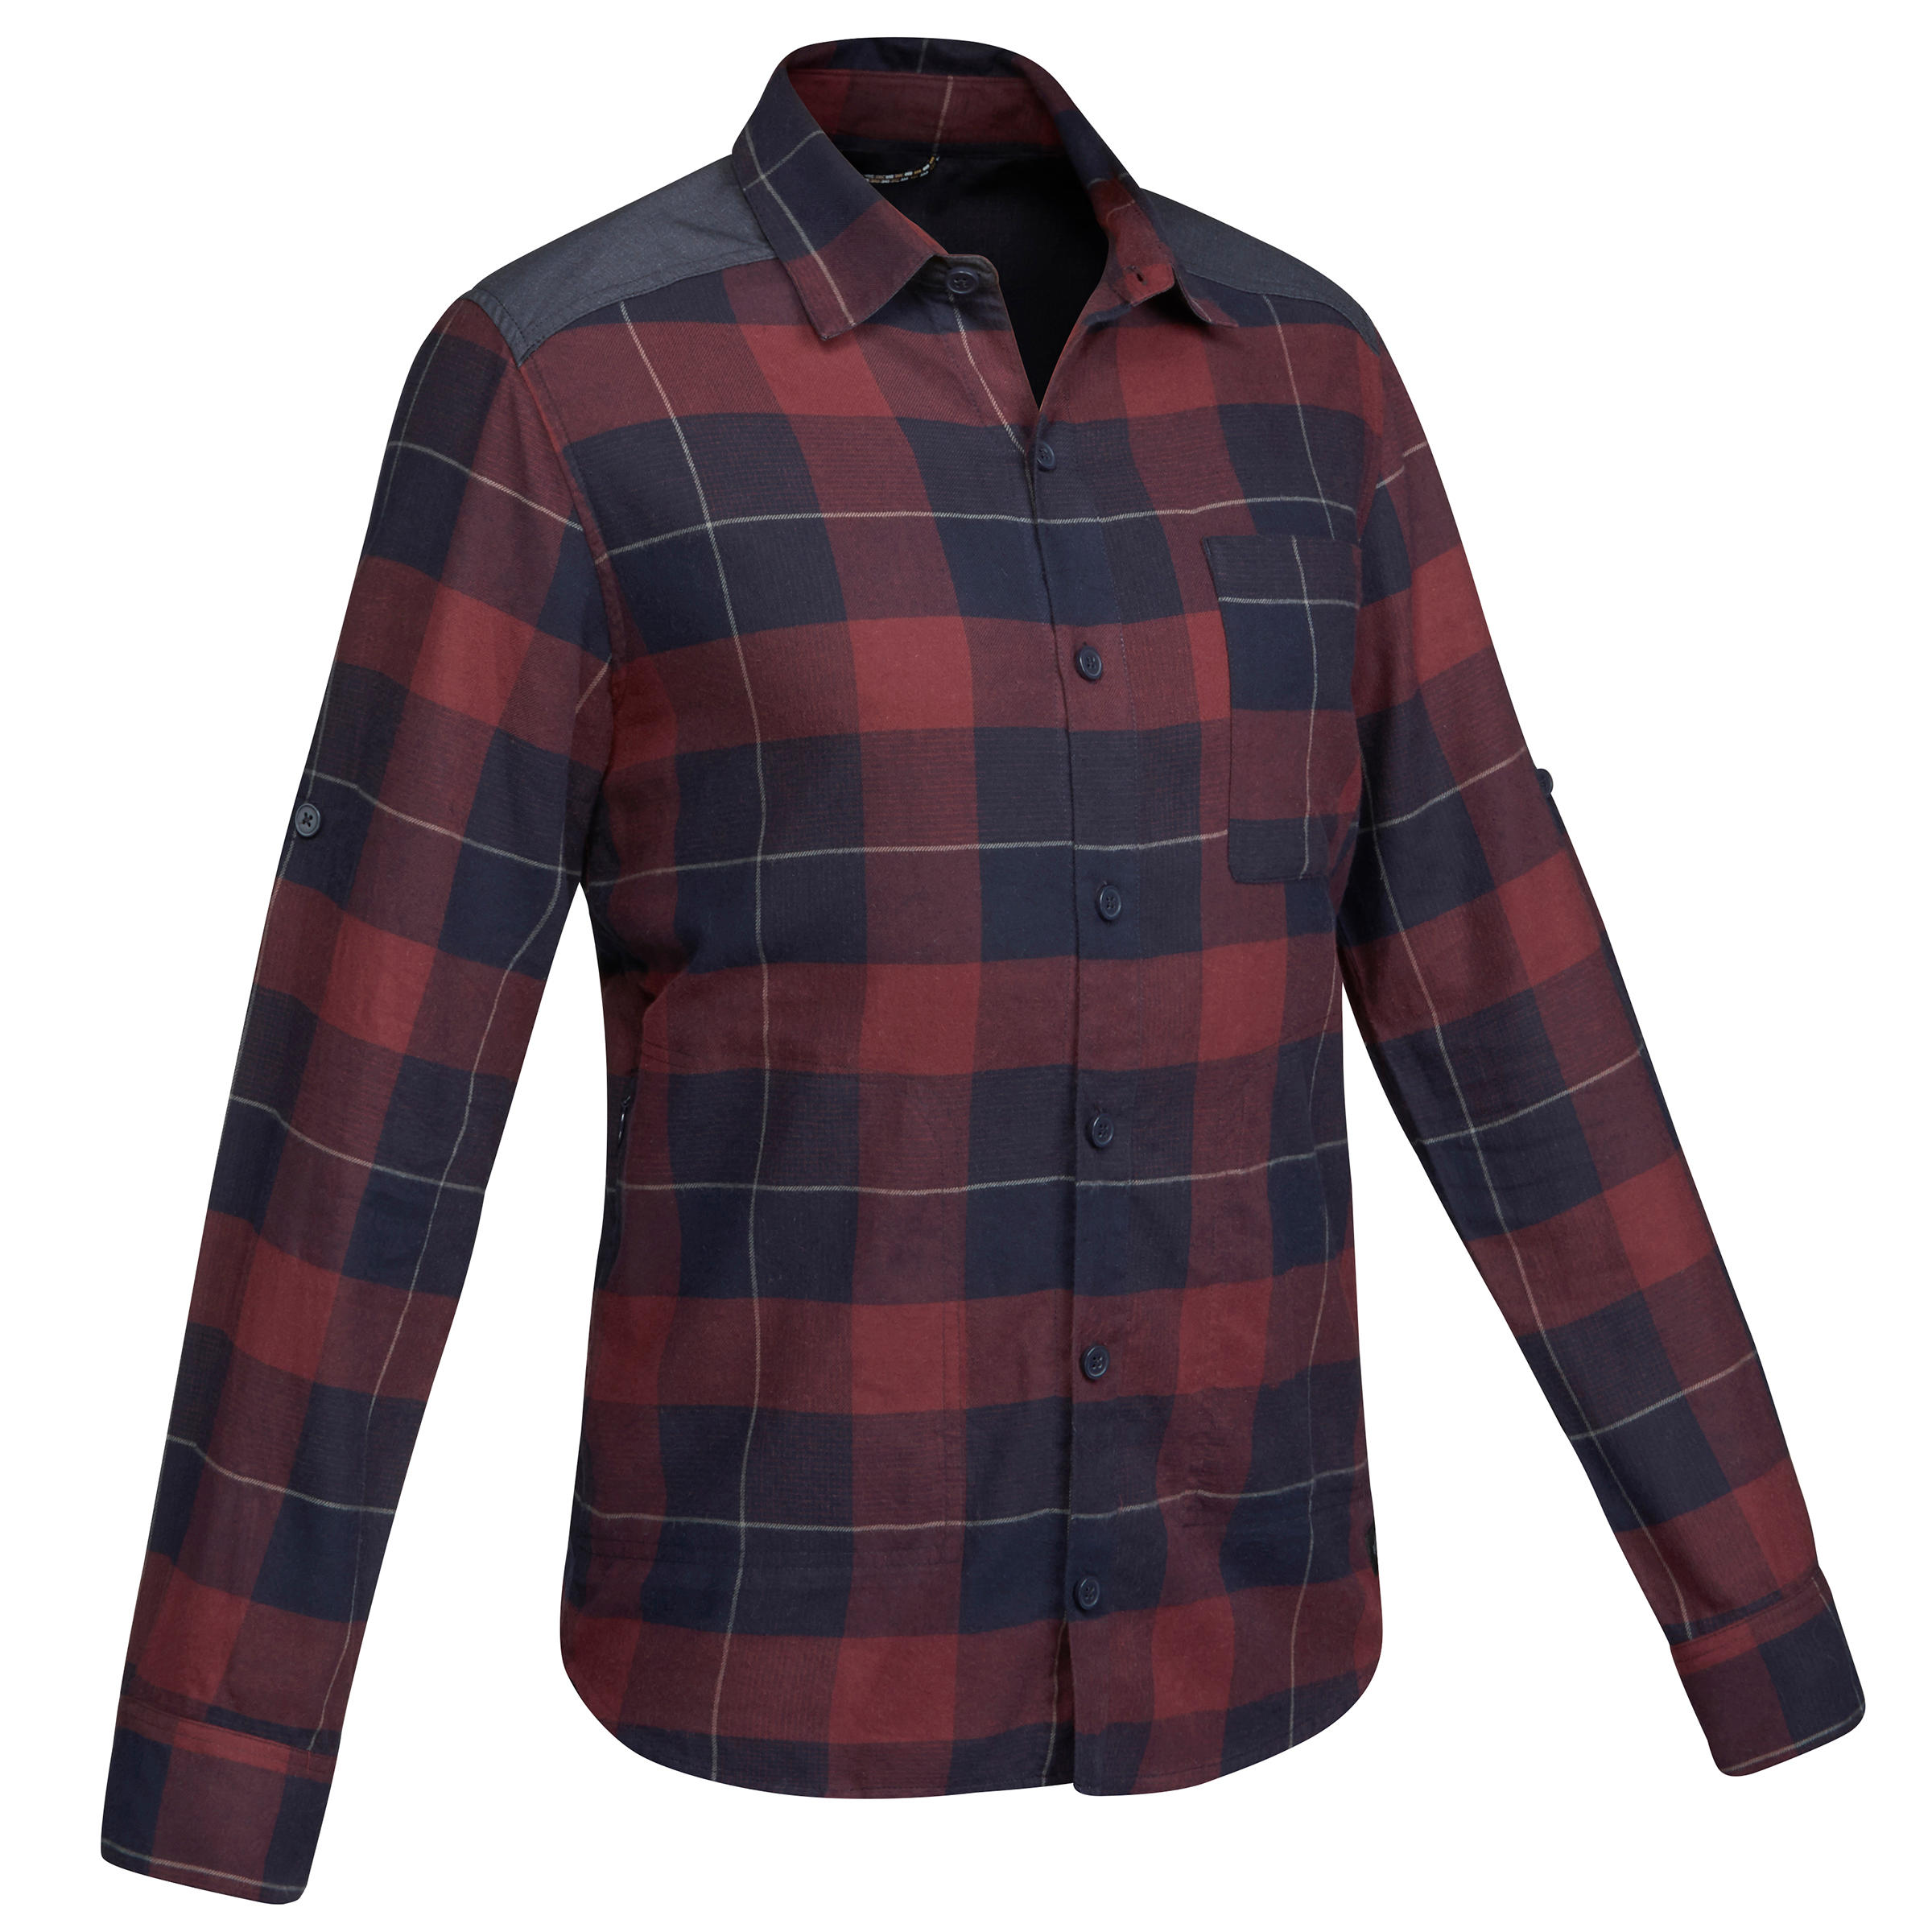 Travel100 Warm Men's Trekking Shirt - Burgundy